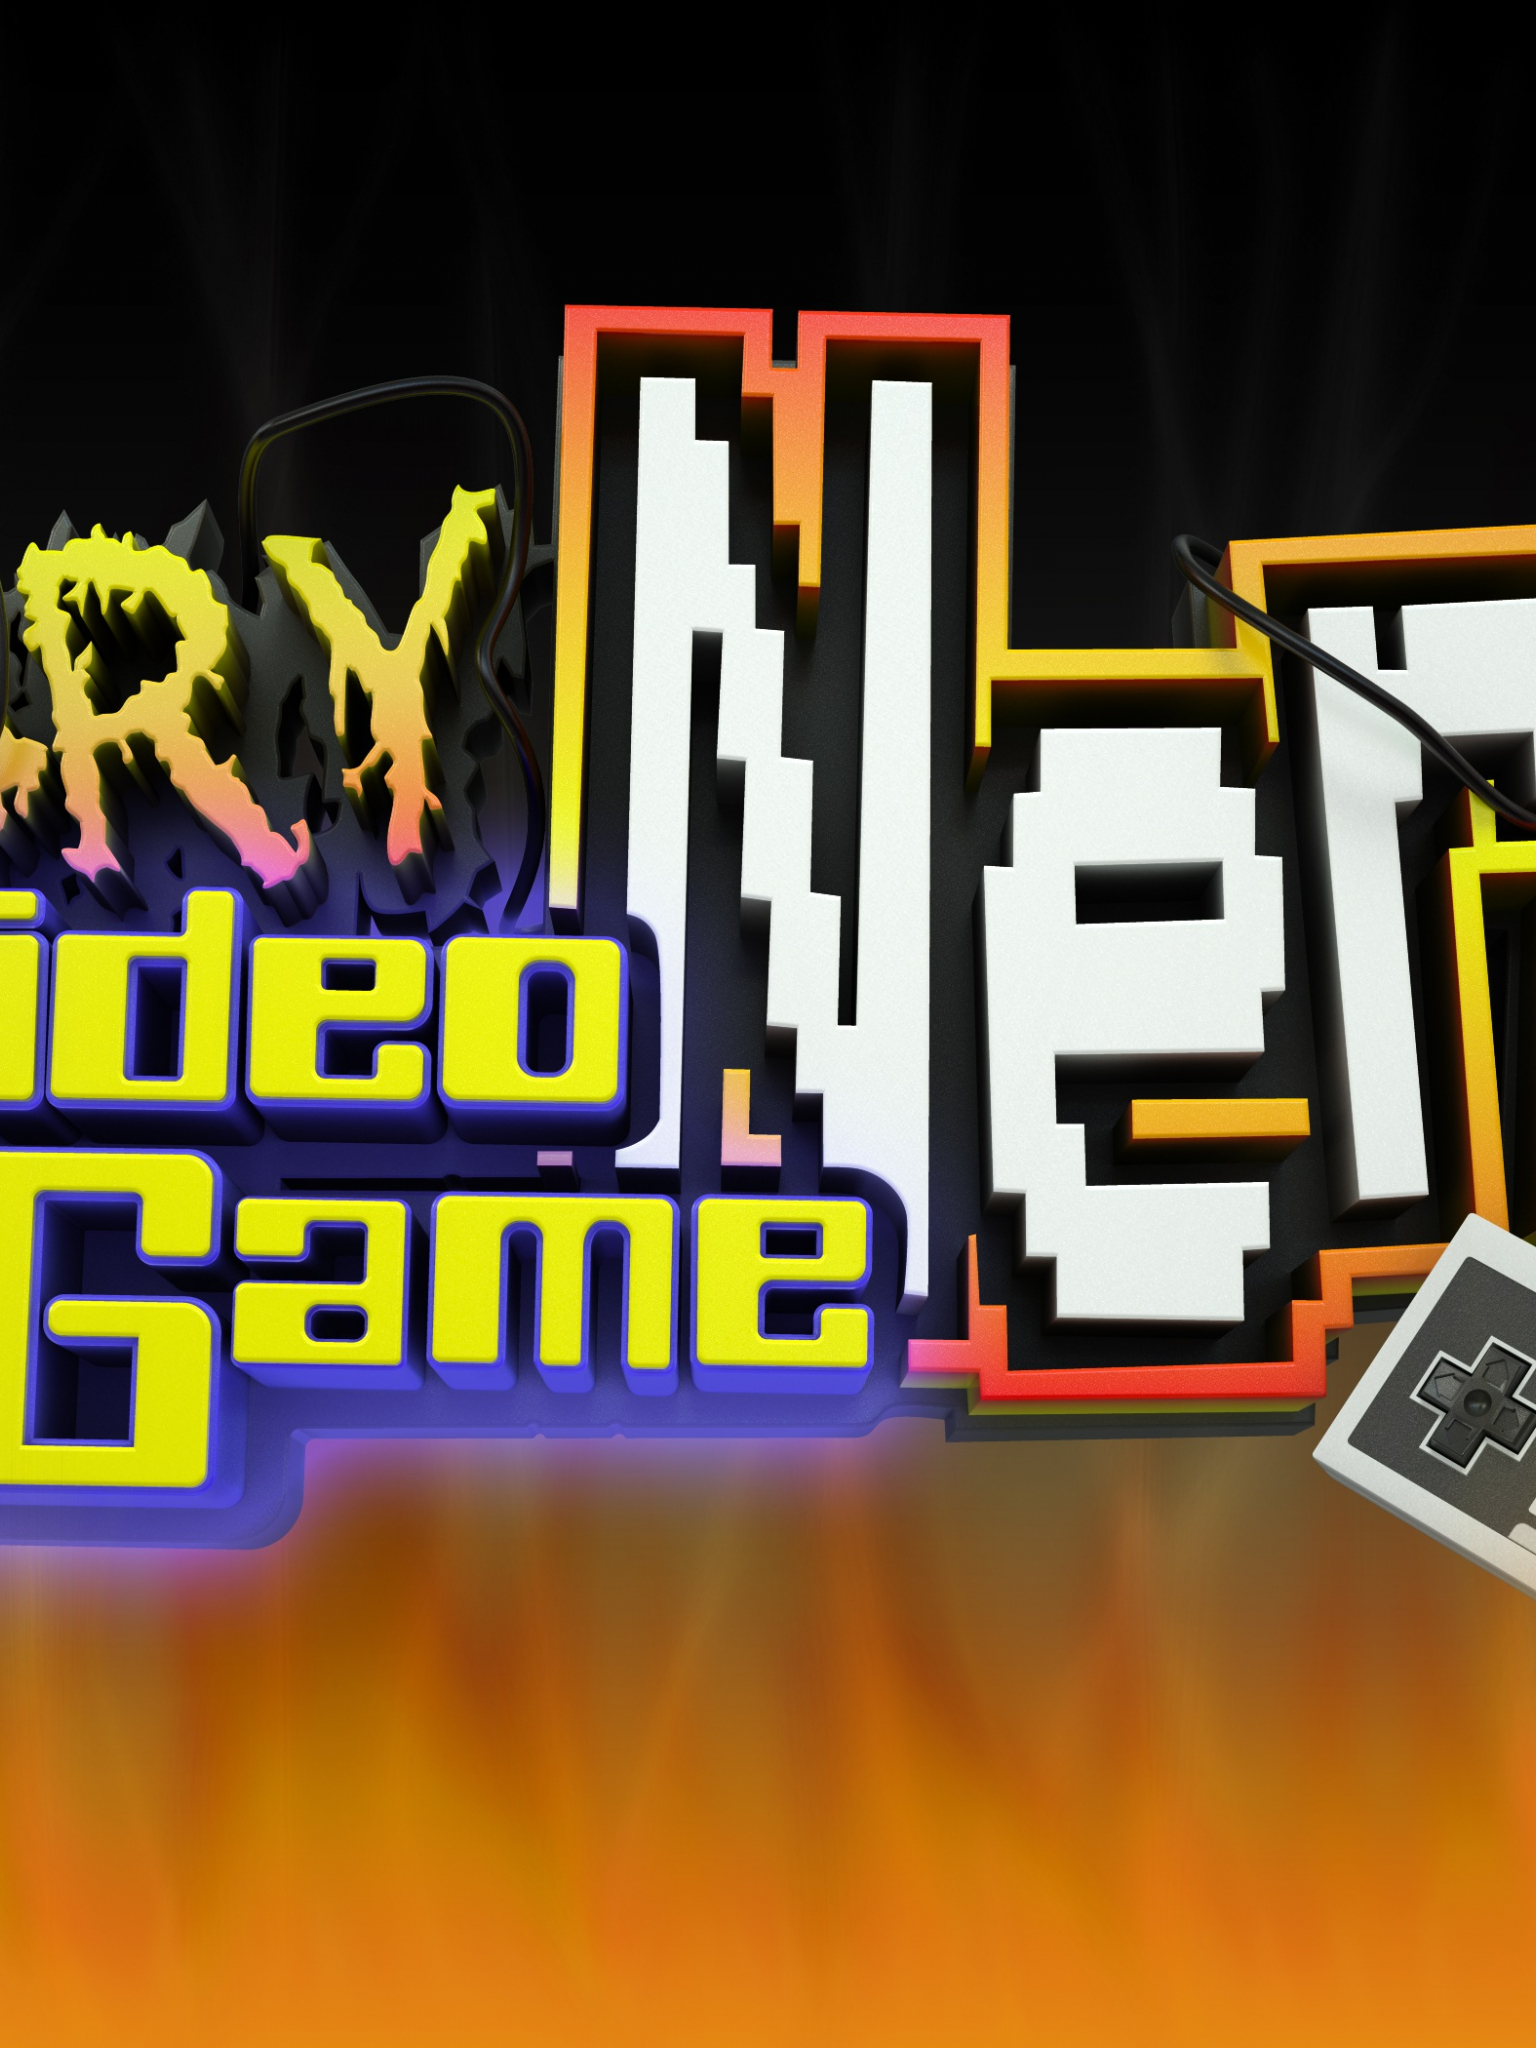 Free Download Angry Video Game Nerd Wallpaper 262653 3500x2100